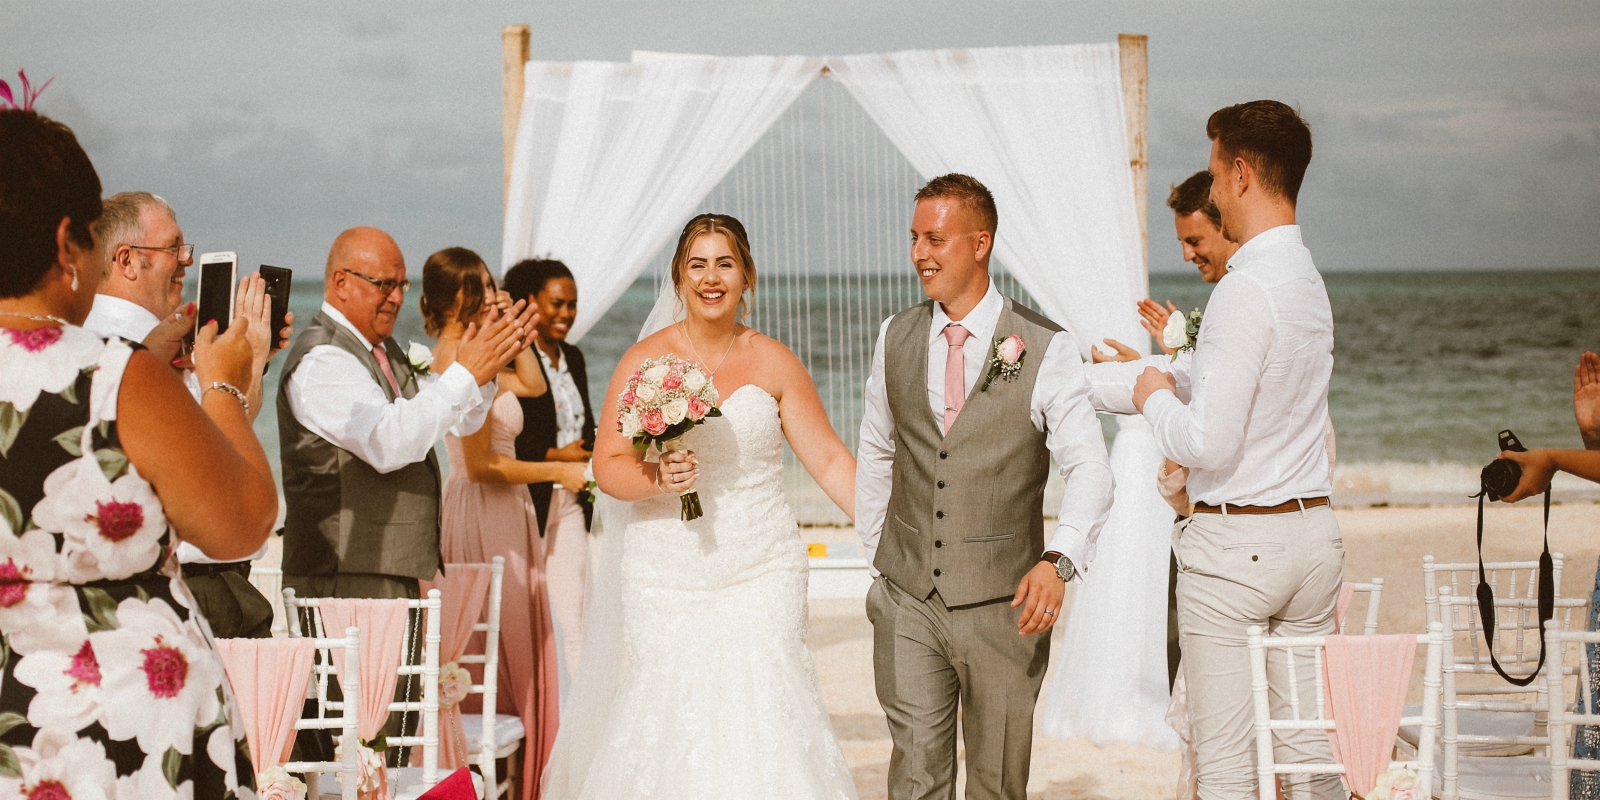 Travel blog: Chloe's Top Tips for a perfect destination wedding